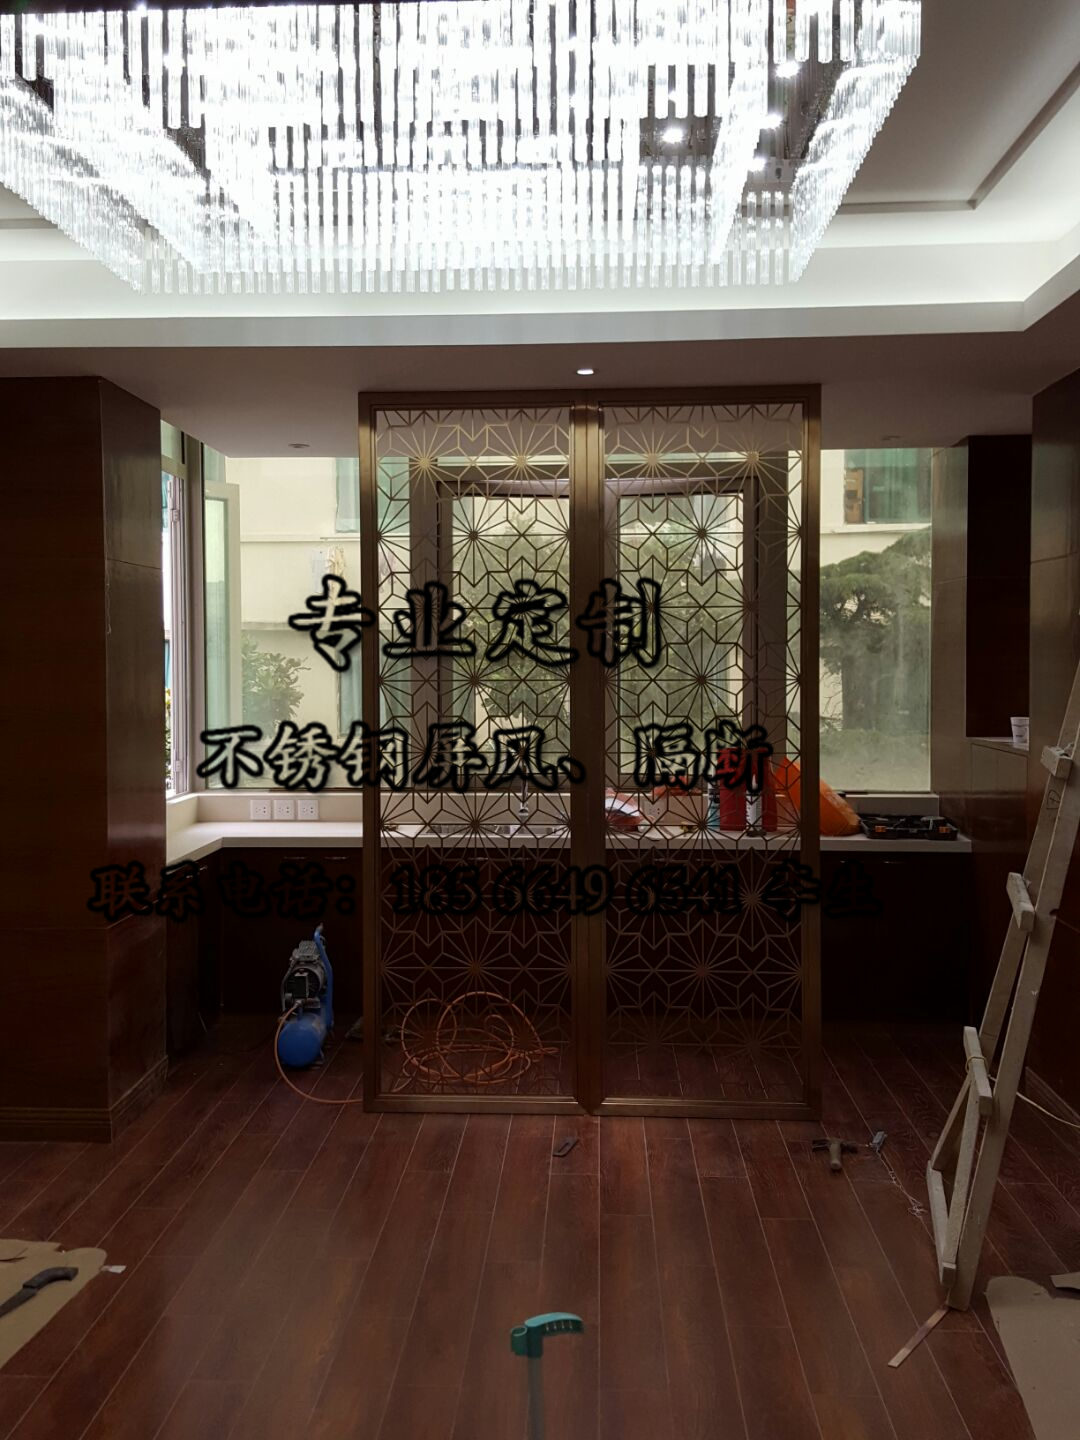 The living room stainless steel screen partition hollow carved tracery screen modern entrance hotel stainless steel folding custom